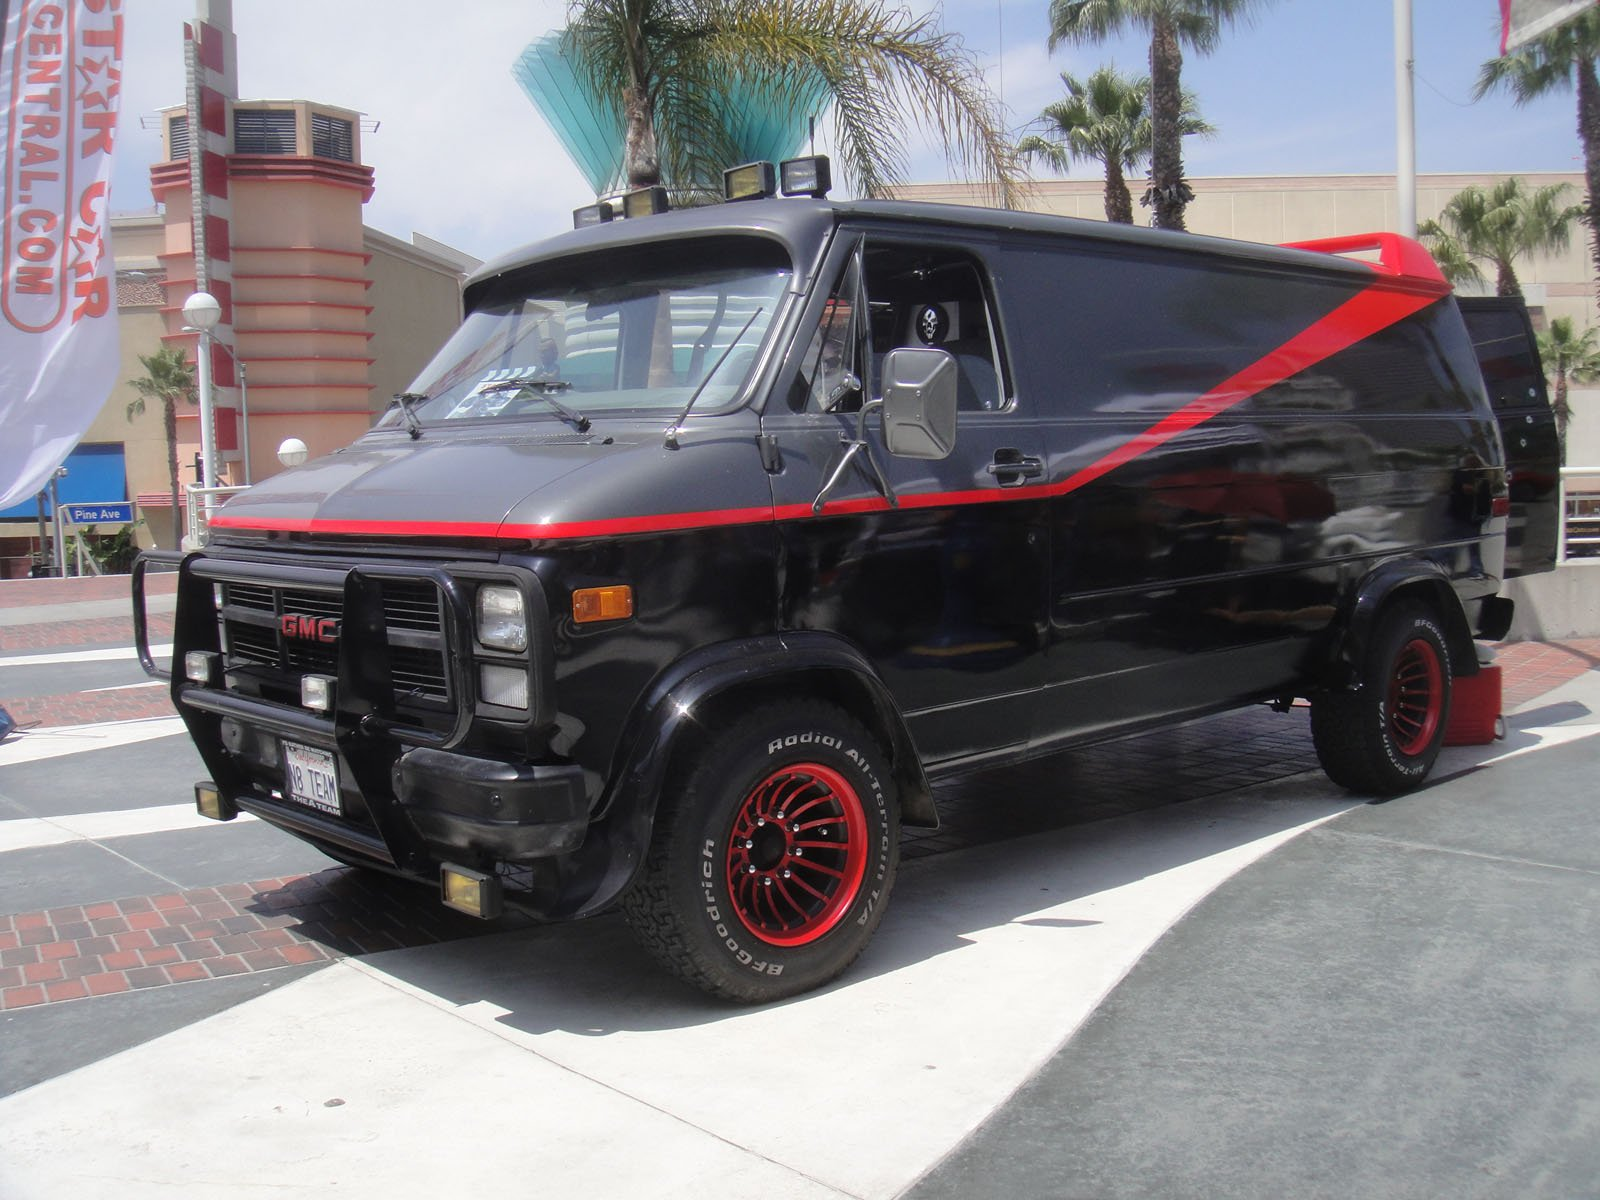 Long Beach Comic Expo 2012 A Team van 7186650356 Legendary 1980s TV & Movie Vehicles That Sold For A Fortune At Auction